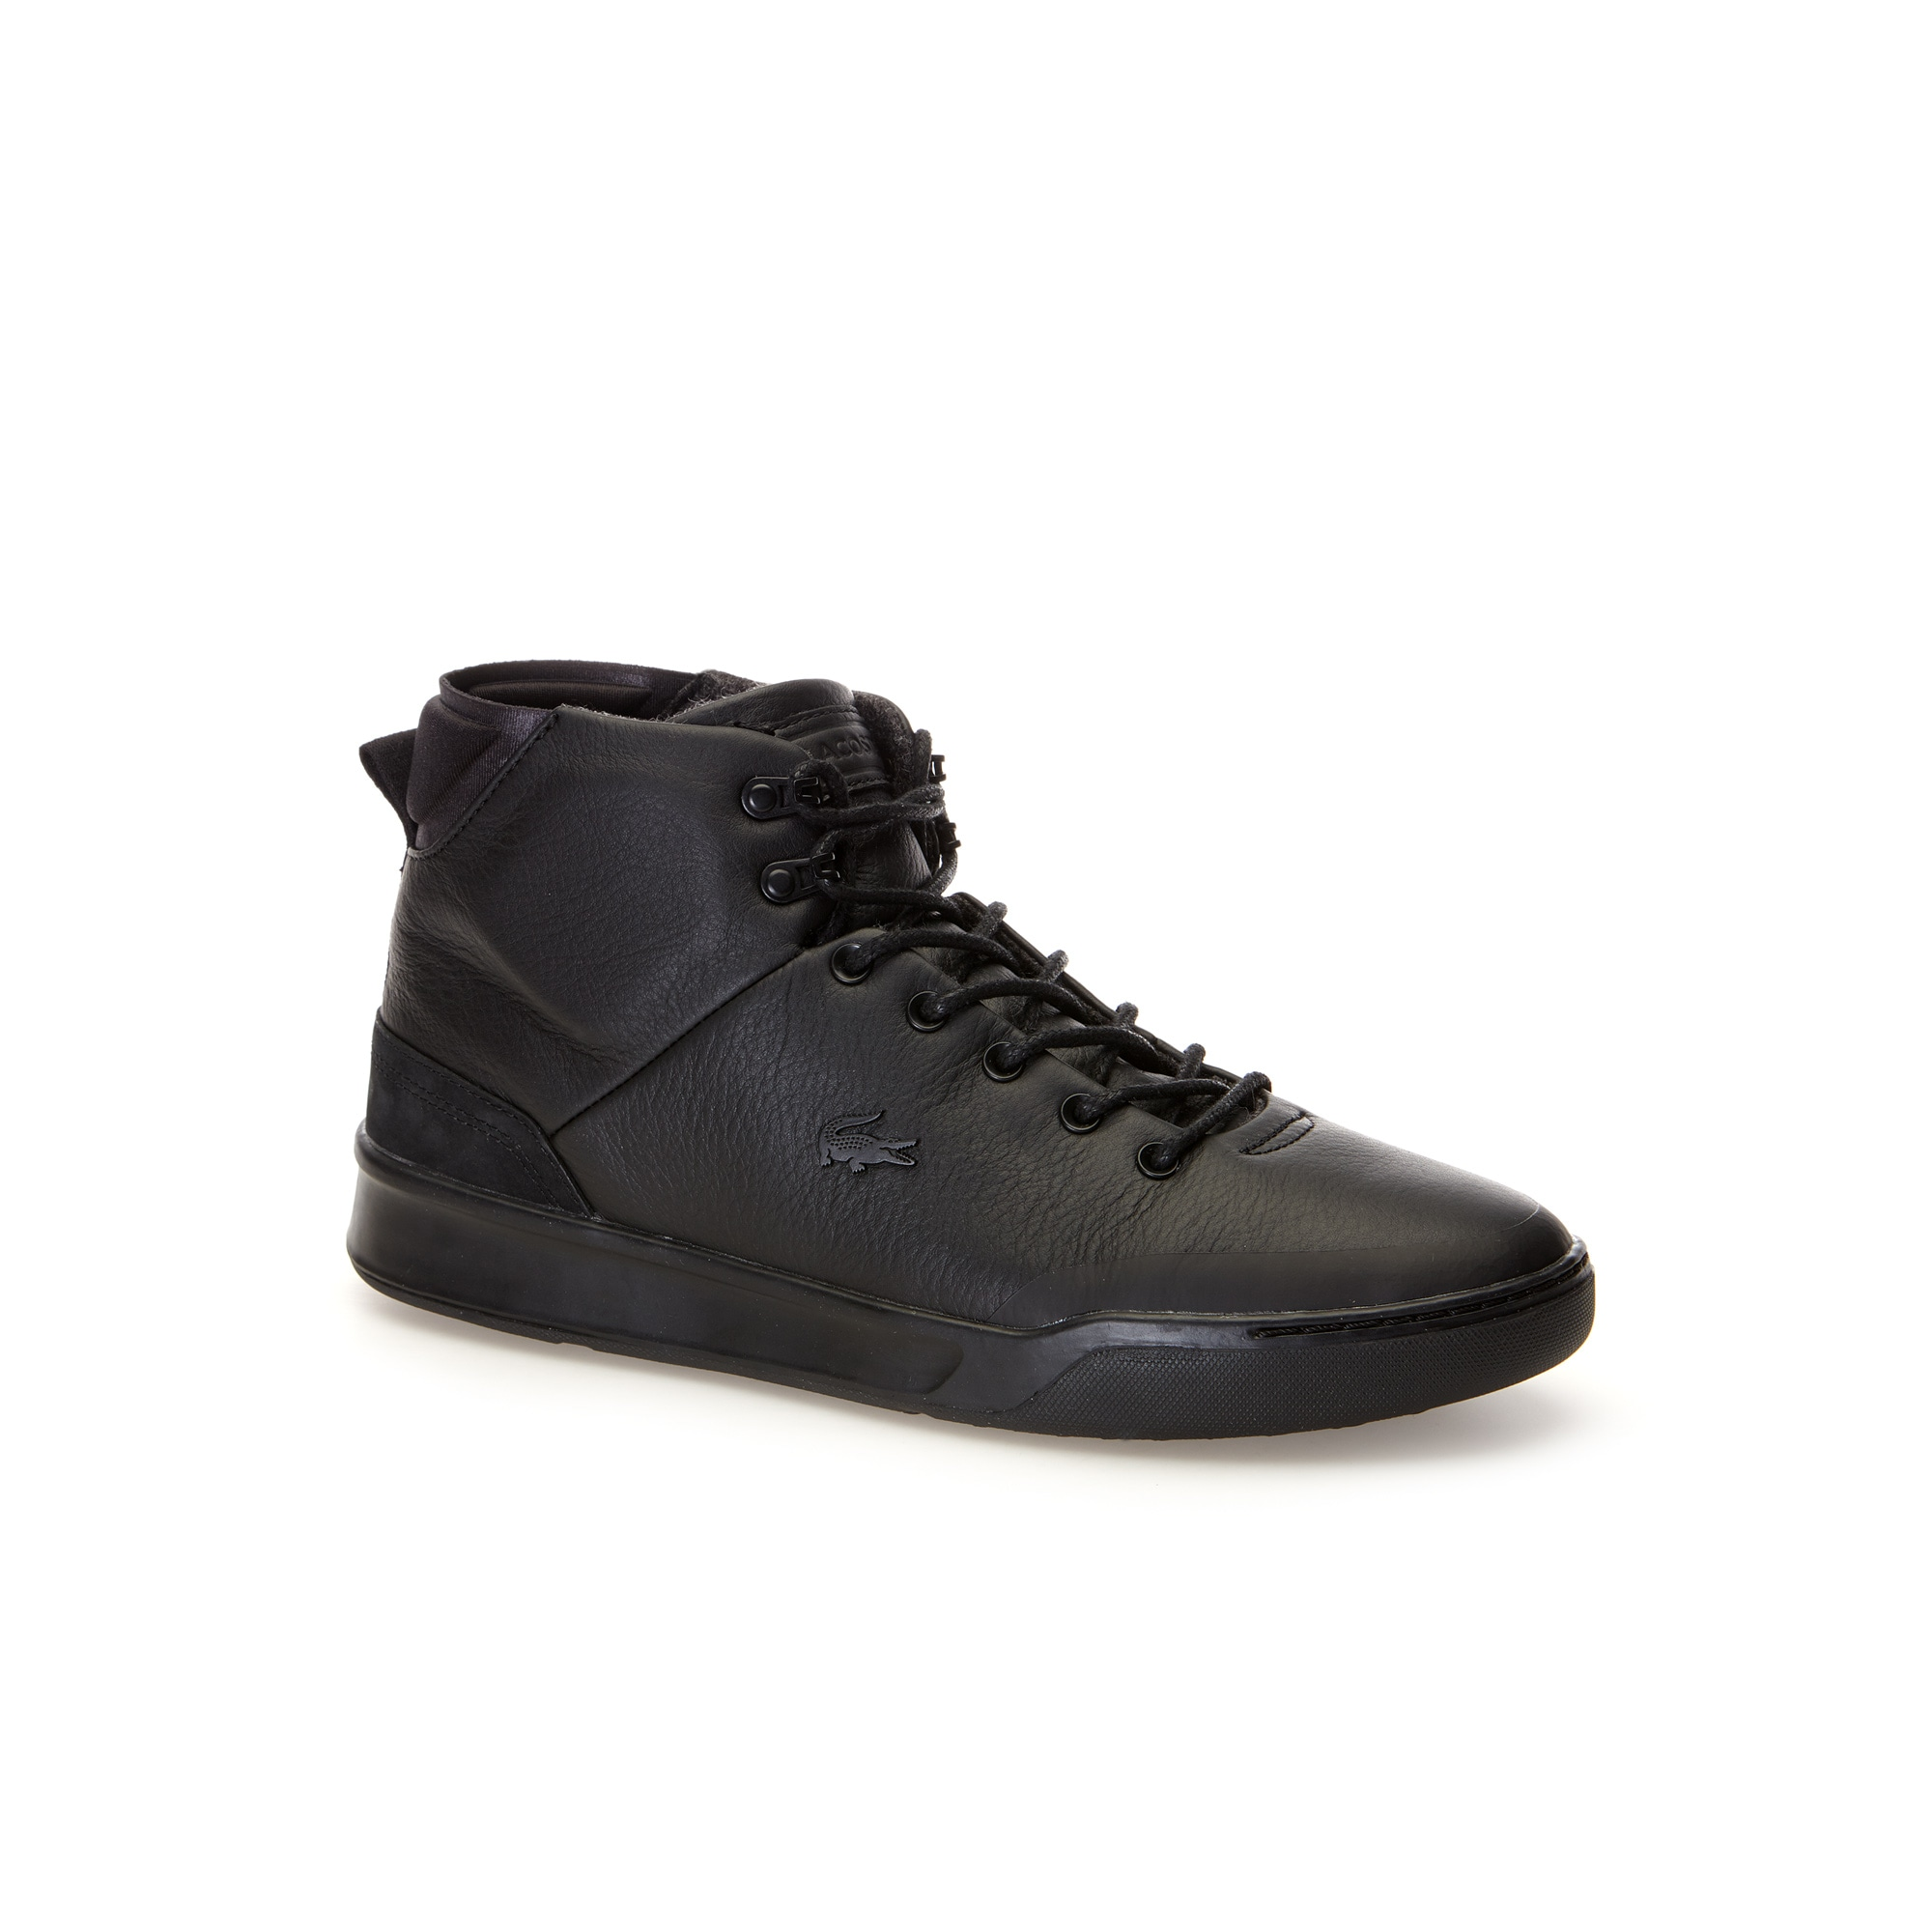 Herren High-Top Sneakers EXPLORATEUR CLASSIC BLACK aus Leder